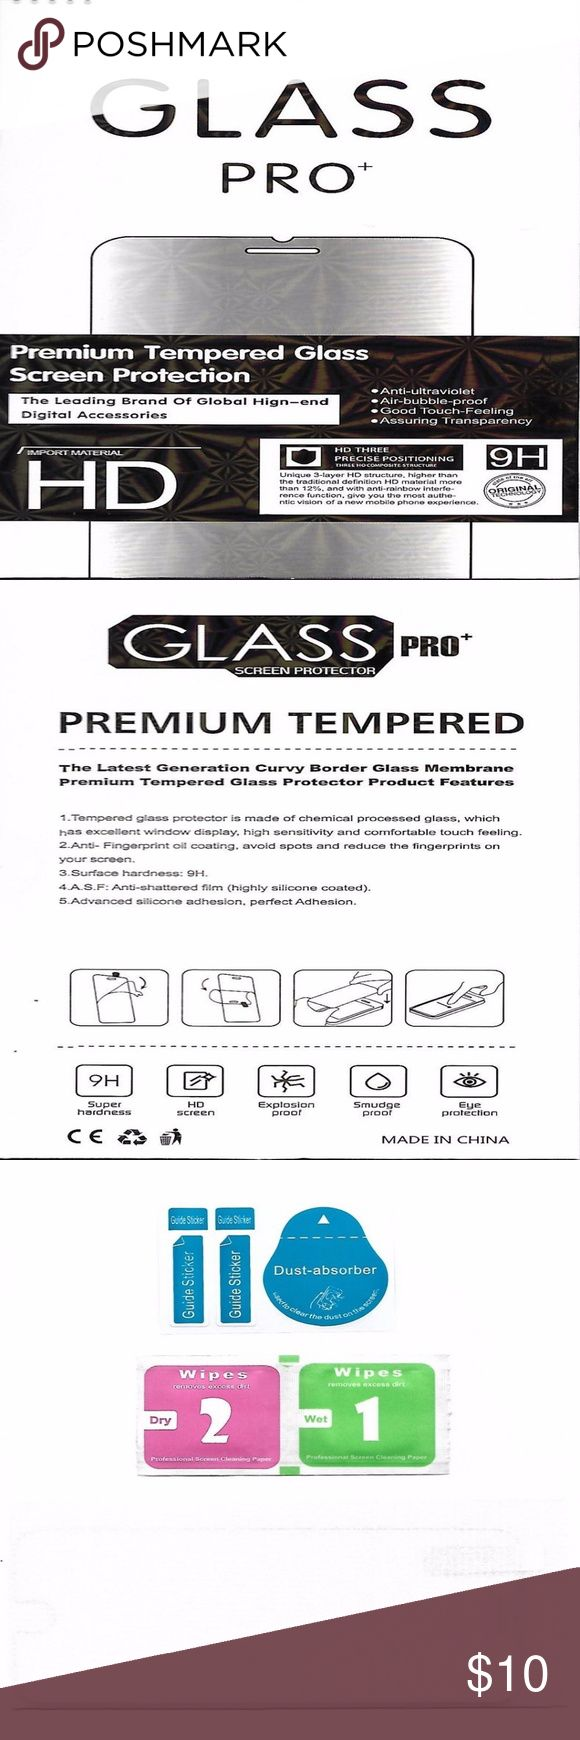 Tempered Glass Screen Protector iPhone 7 Plus Features: Premium Tempered Glass Screen Protection 9H Hardness HD Screen Anti-ultraviolet Air bubble proof Accessories Phone Cases